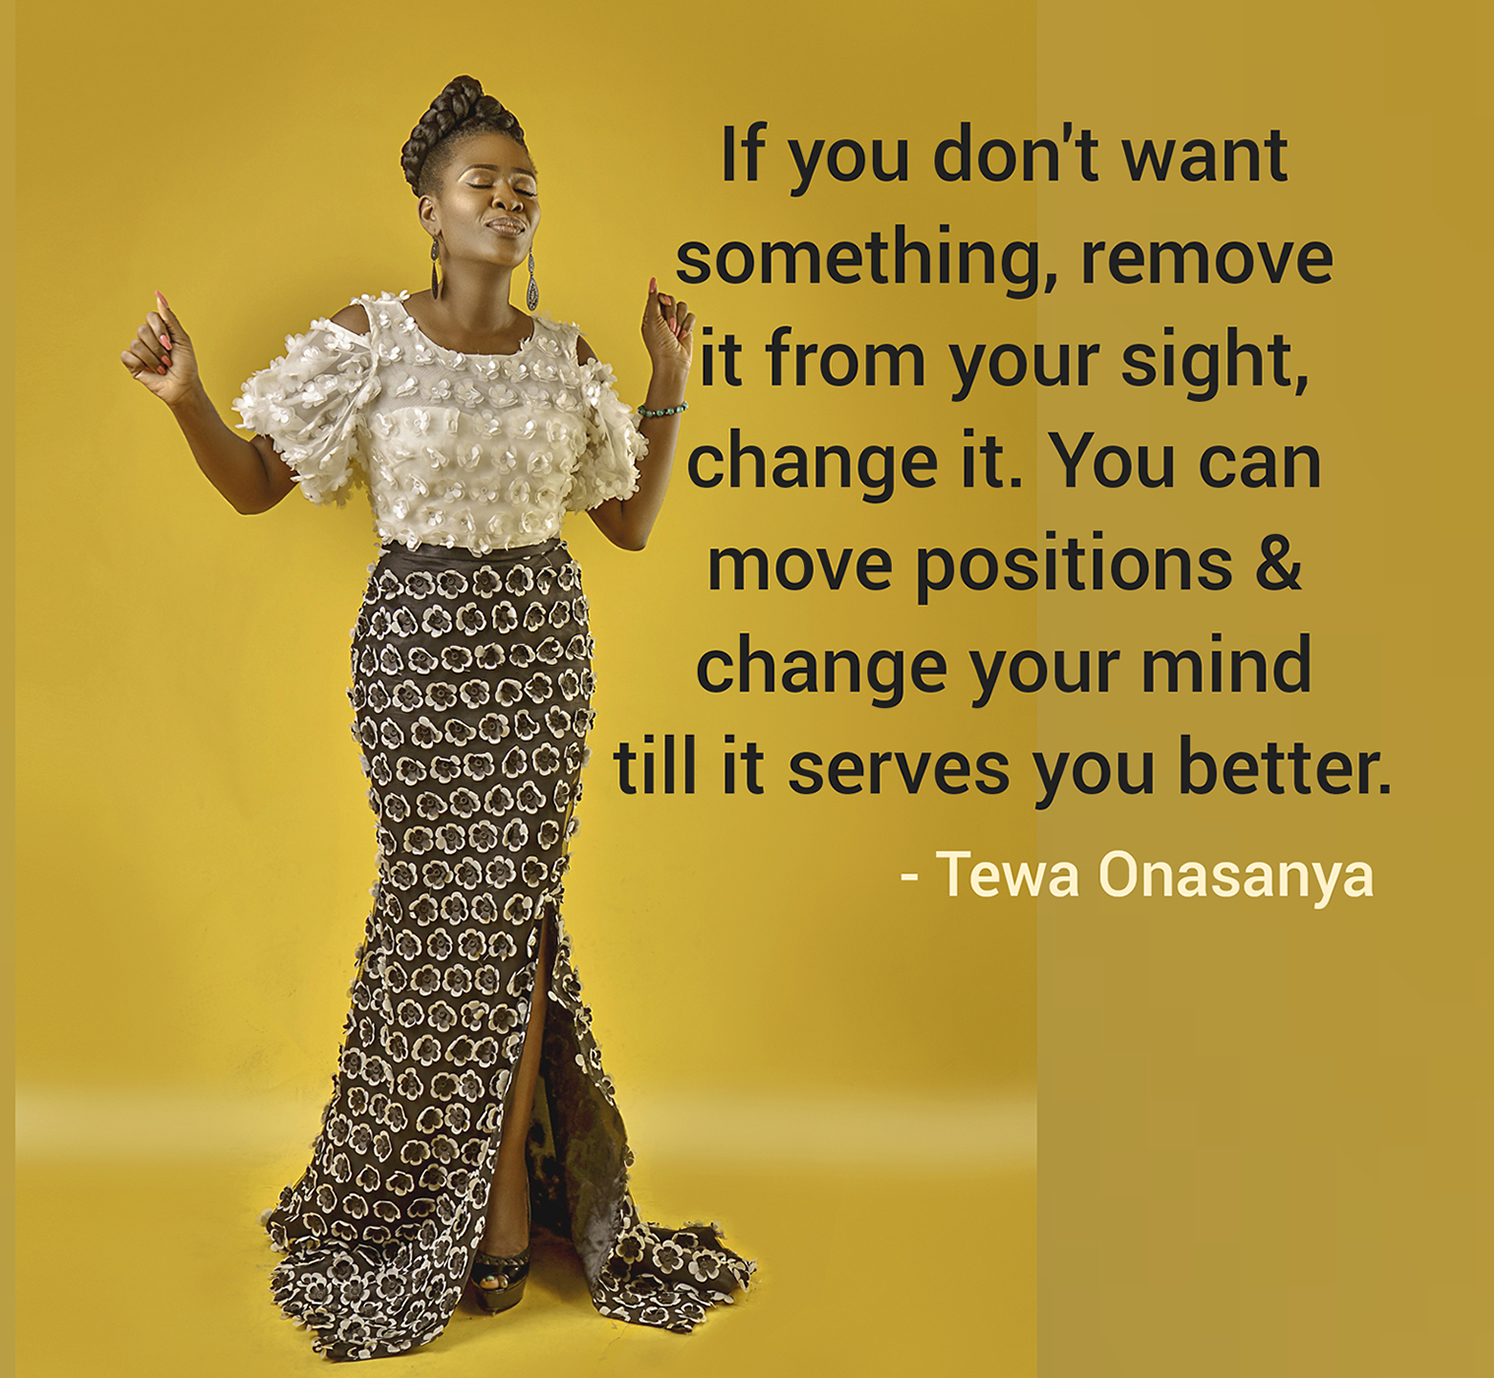 tewa onasanya speaks